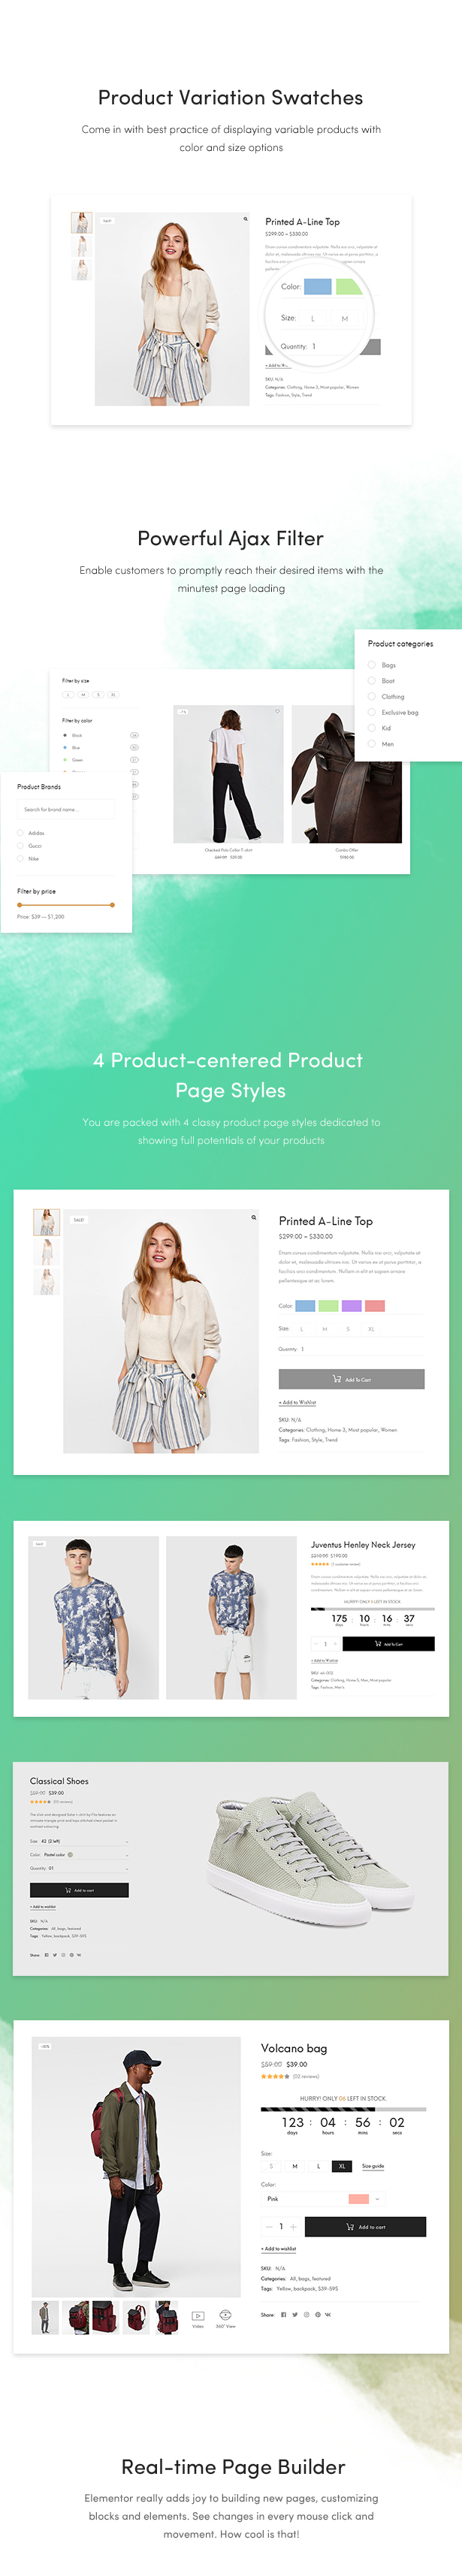 Bult-inBest Features for WooCommerce WordPress Themes To Build Awesome E-Store 2018